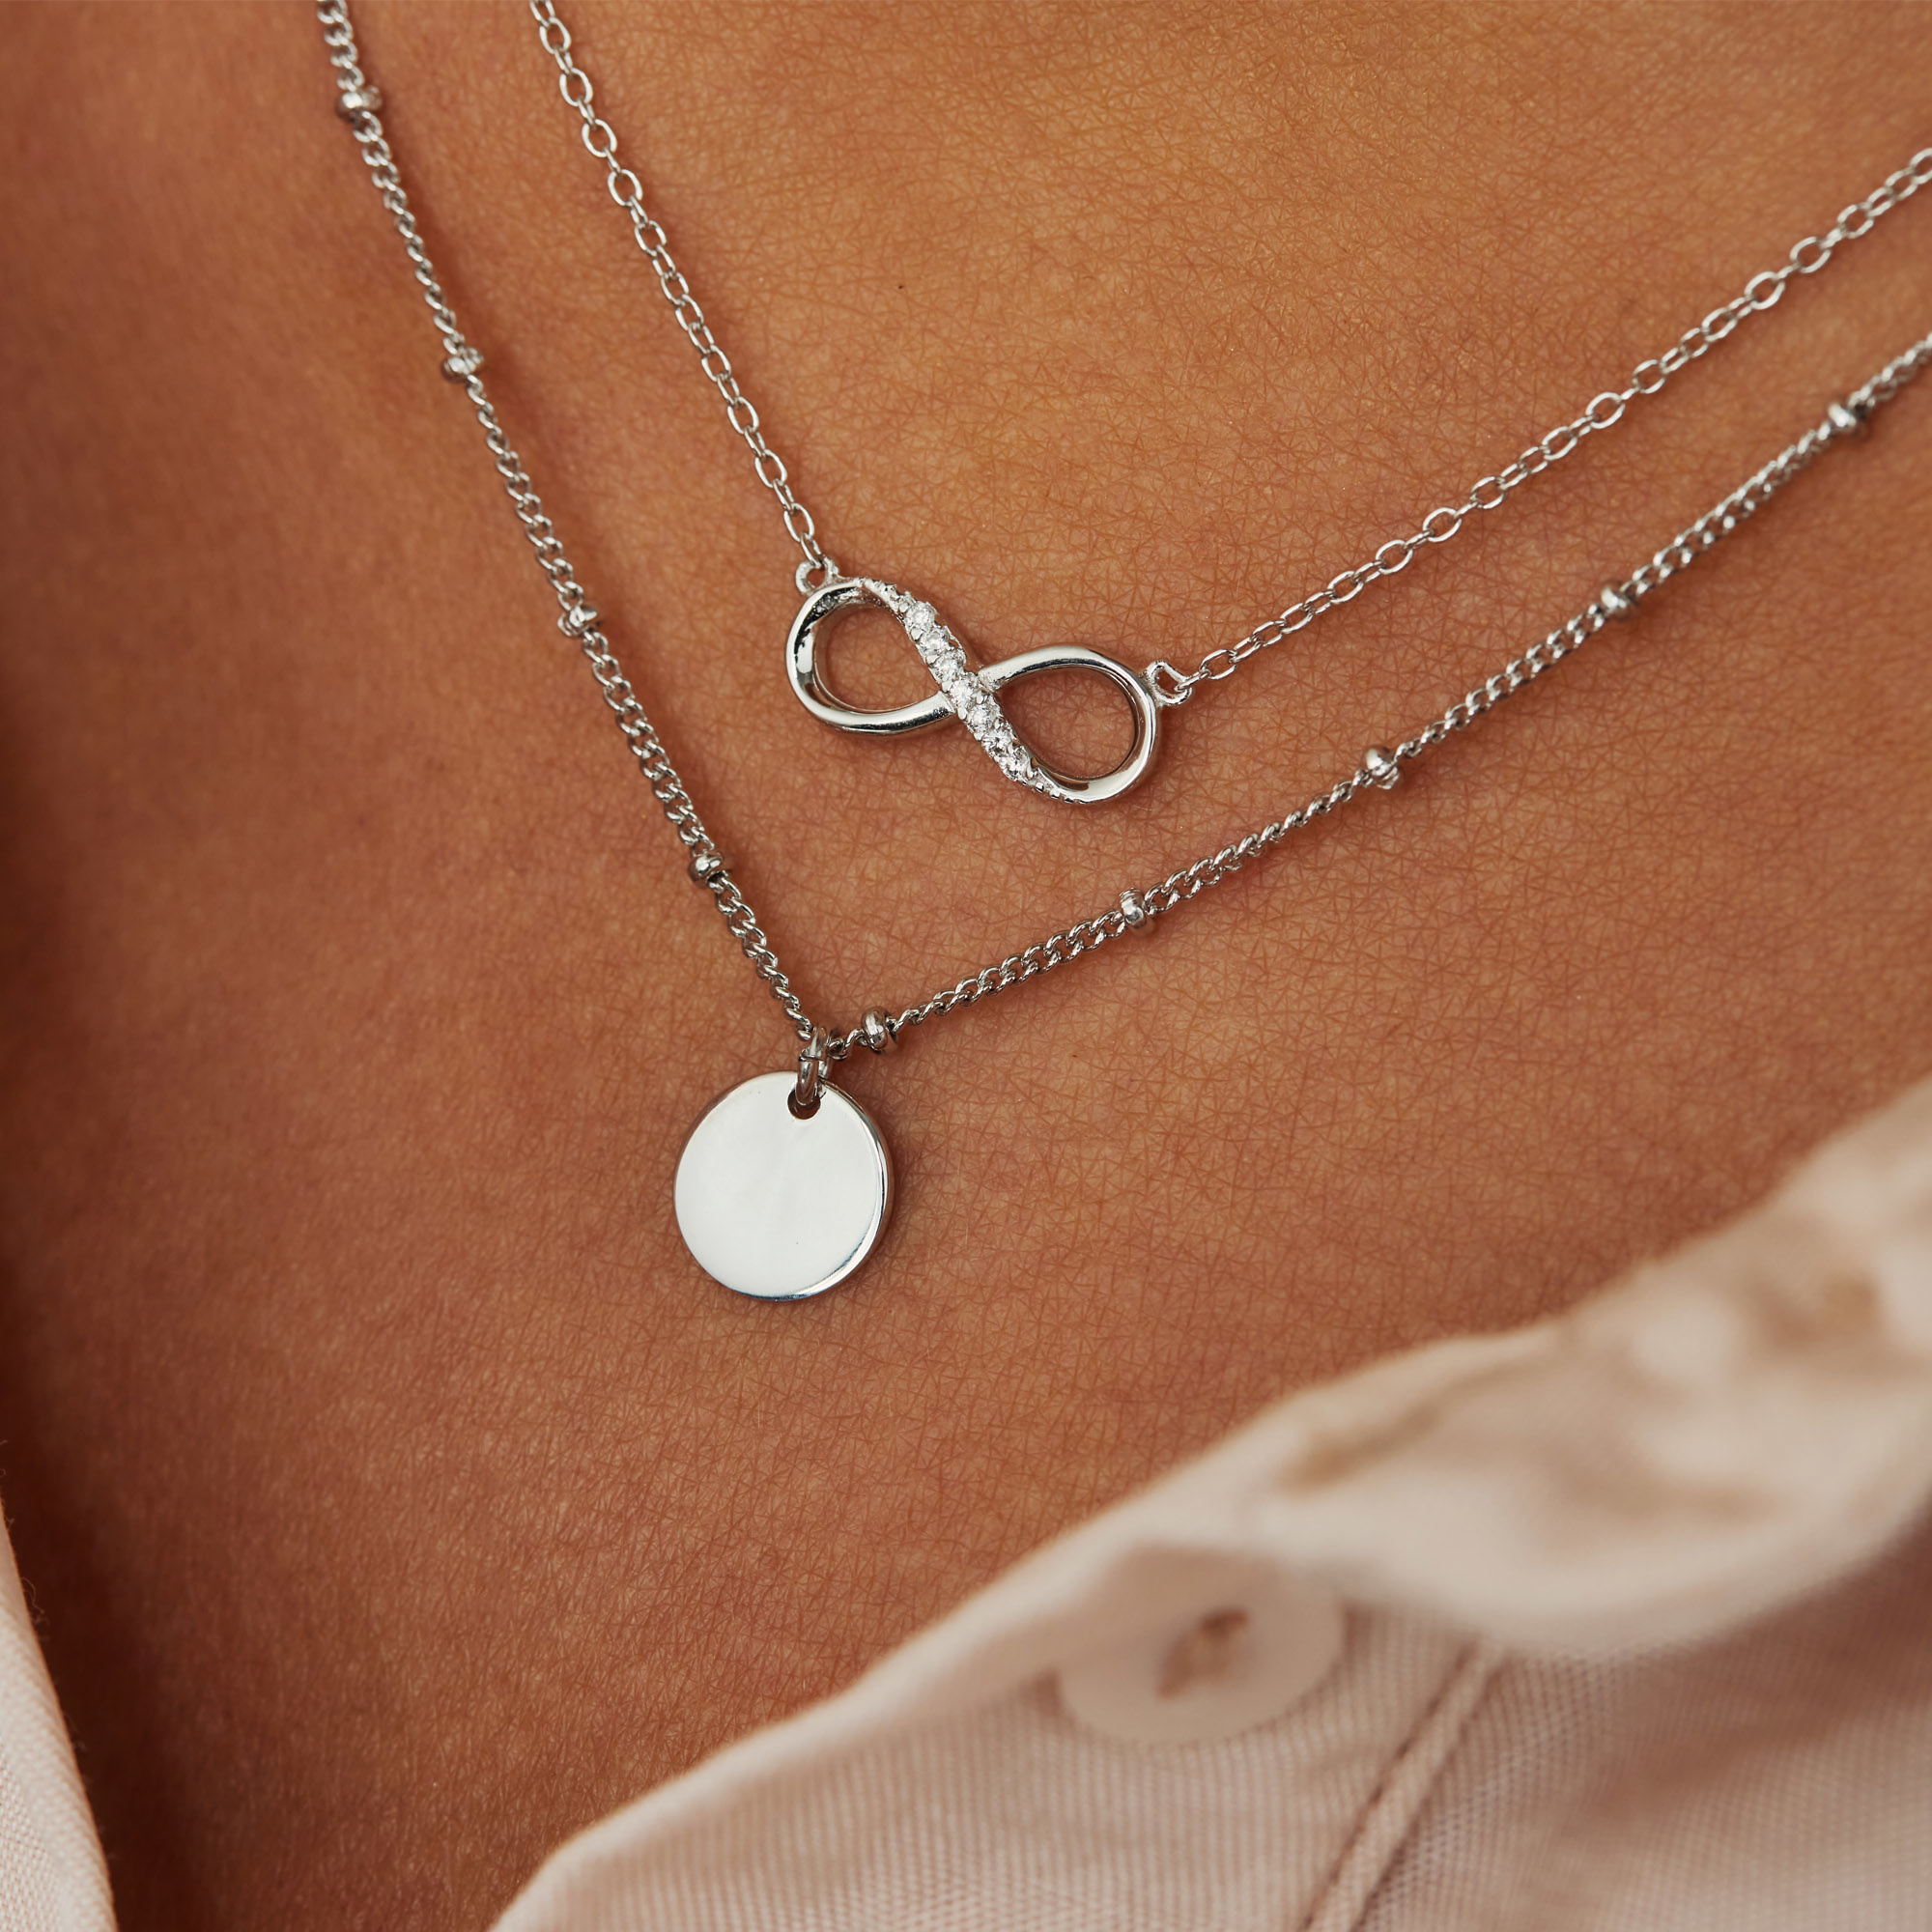 Selected Jewels Julie Emilie 925 sterling silver infinity necklace